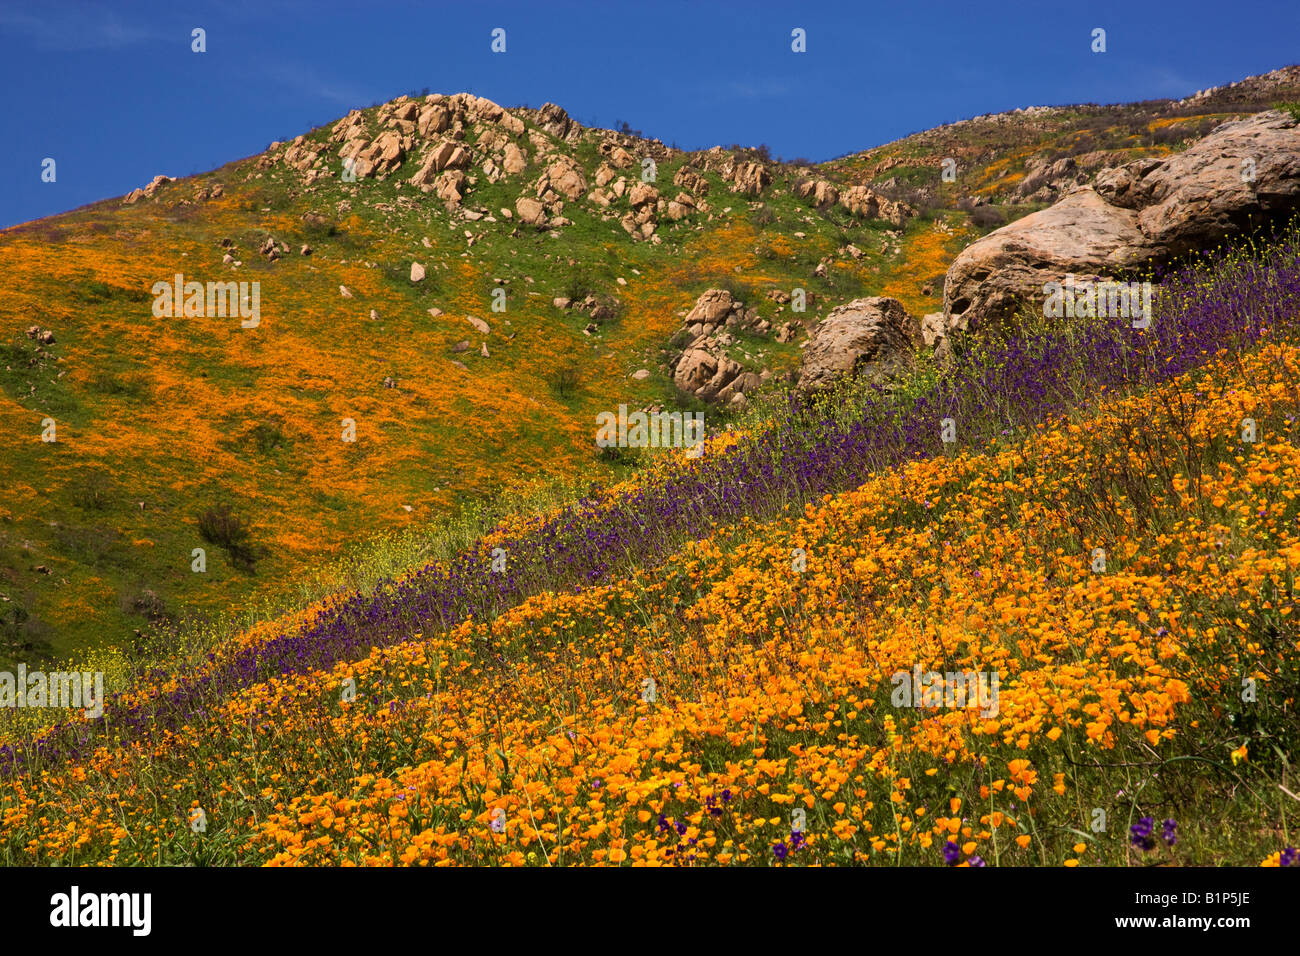 Wildflowers, in the burned hills of San Diego County from the 2007 Witch Creek Fire near Lake Hodges, California. - Stock Image